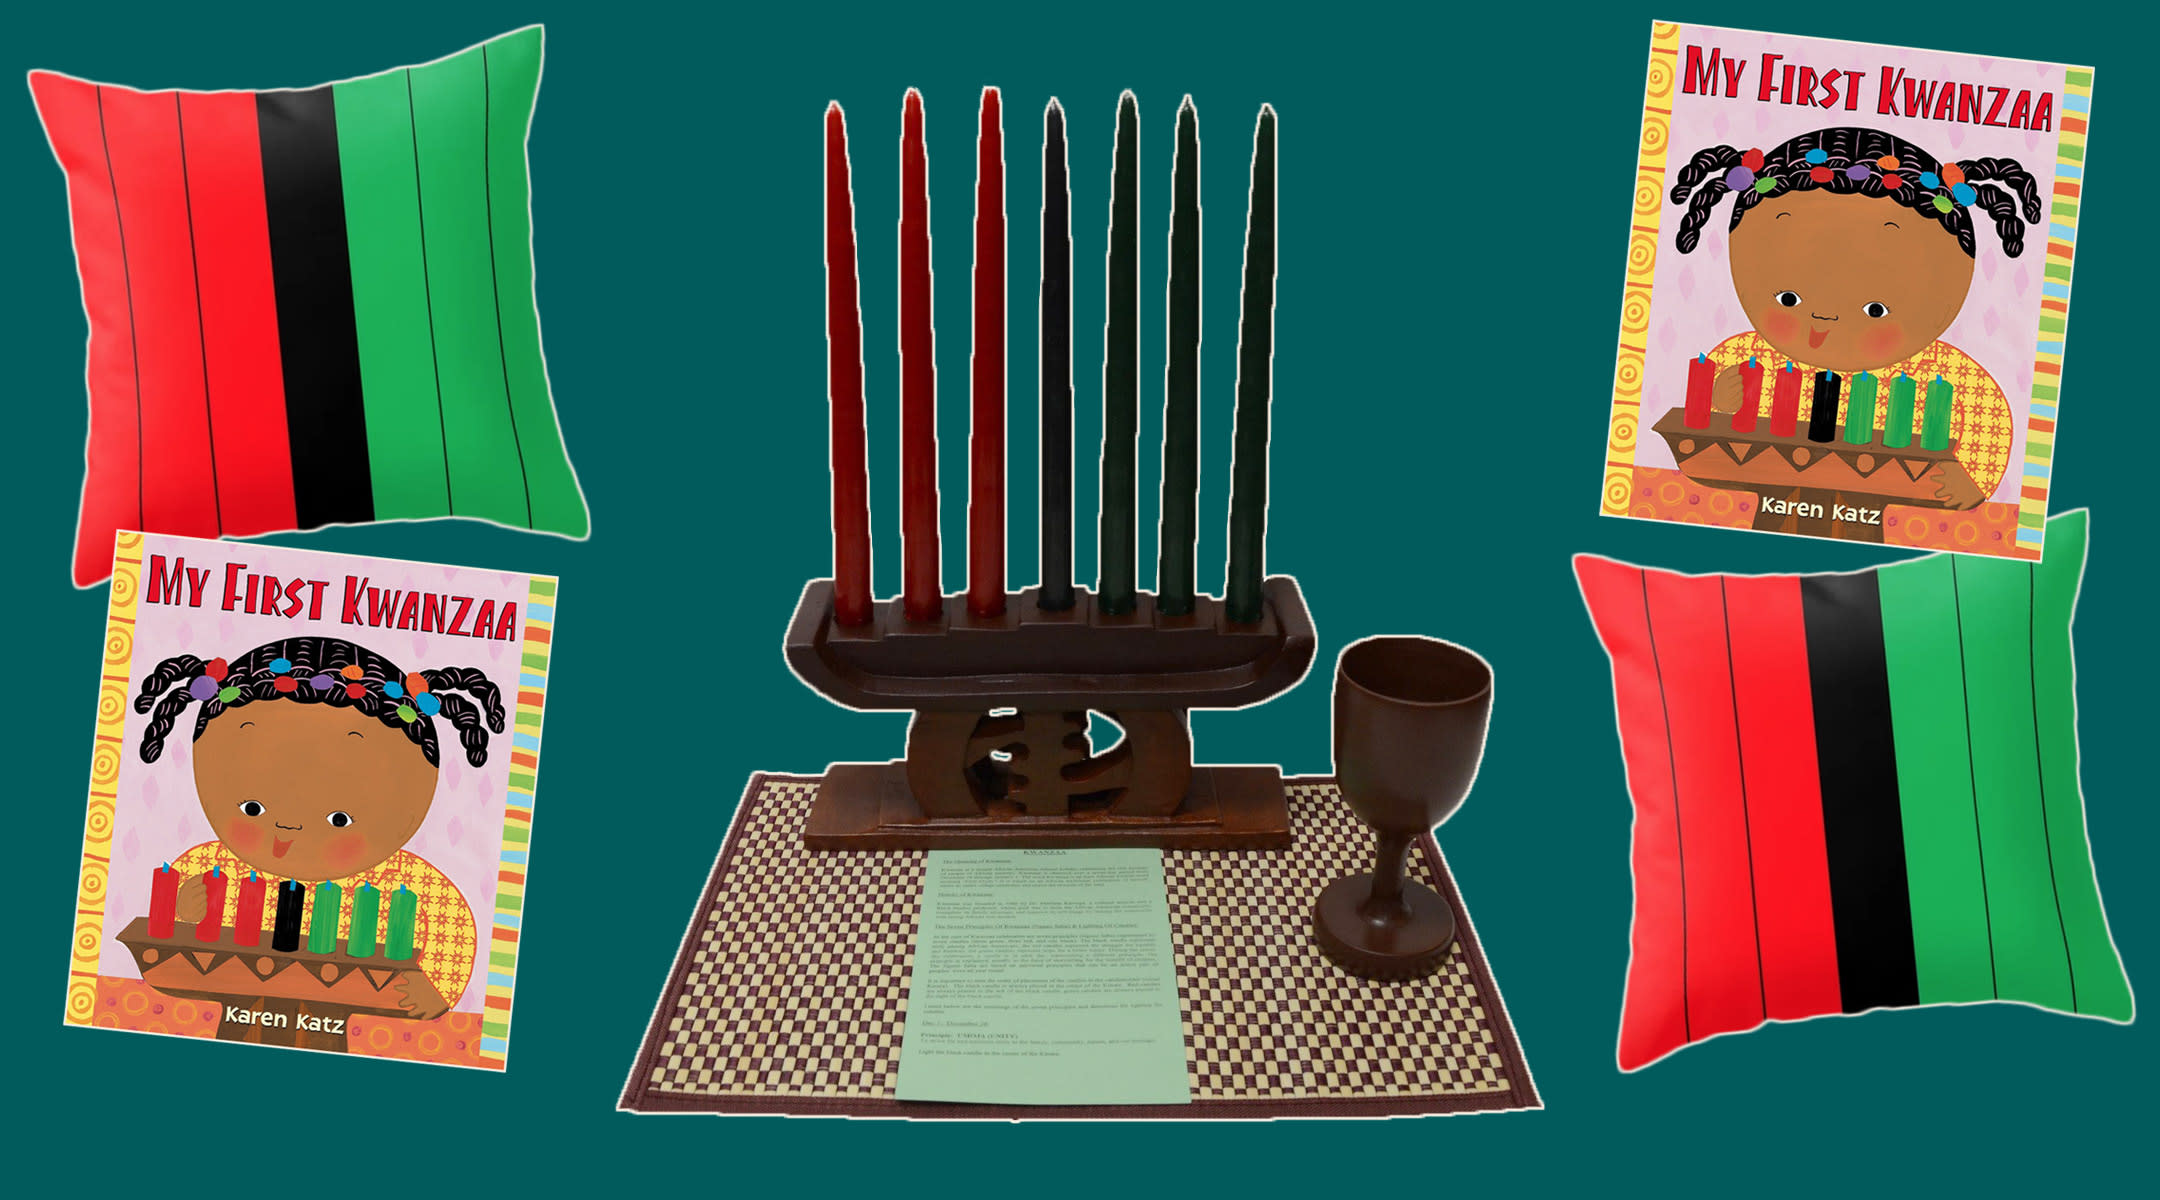 kwanzaa gift guide, pillow, candles, book